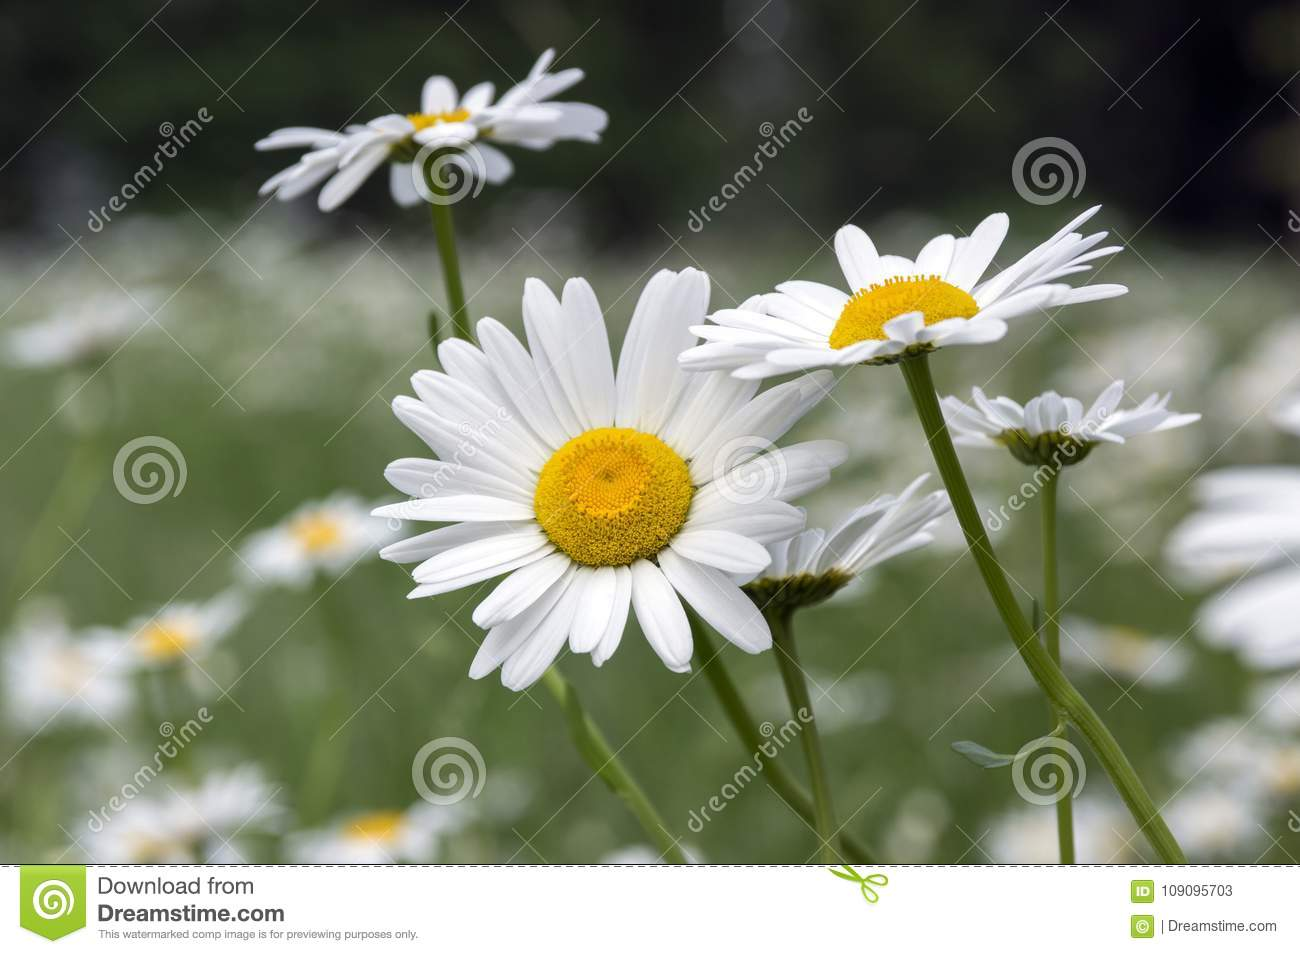 Leucanthemum Vulgare Meadows Wild Flowers With White Petals And